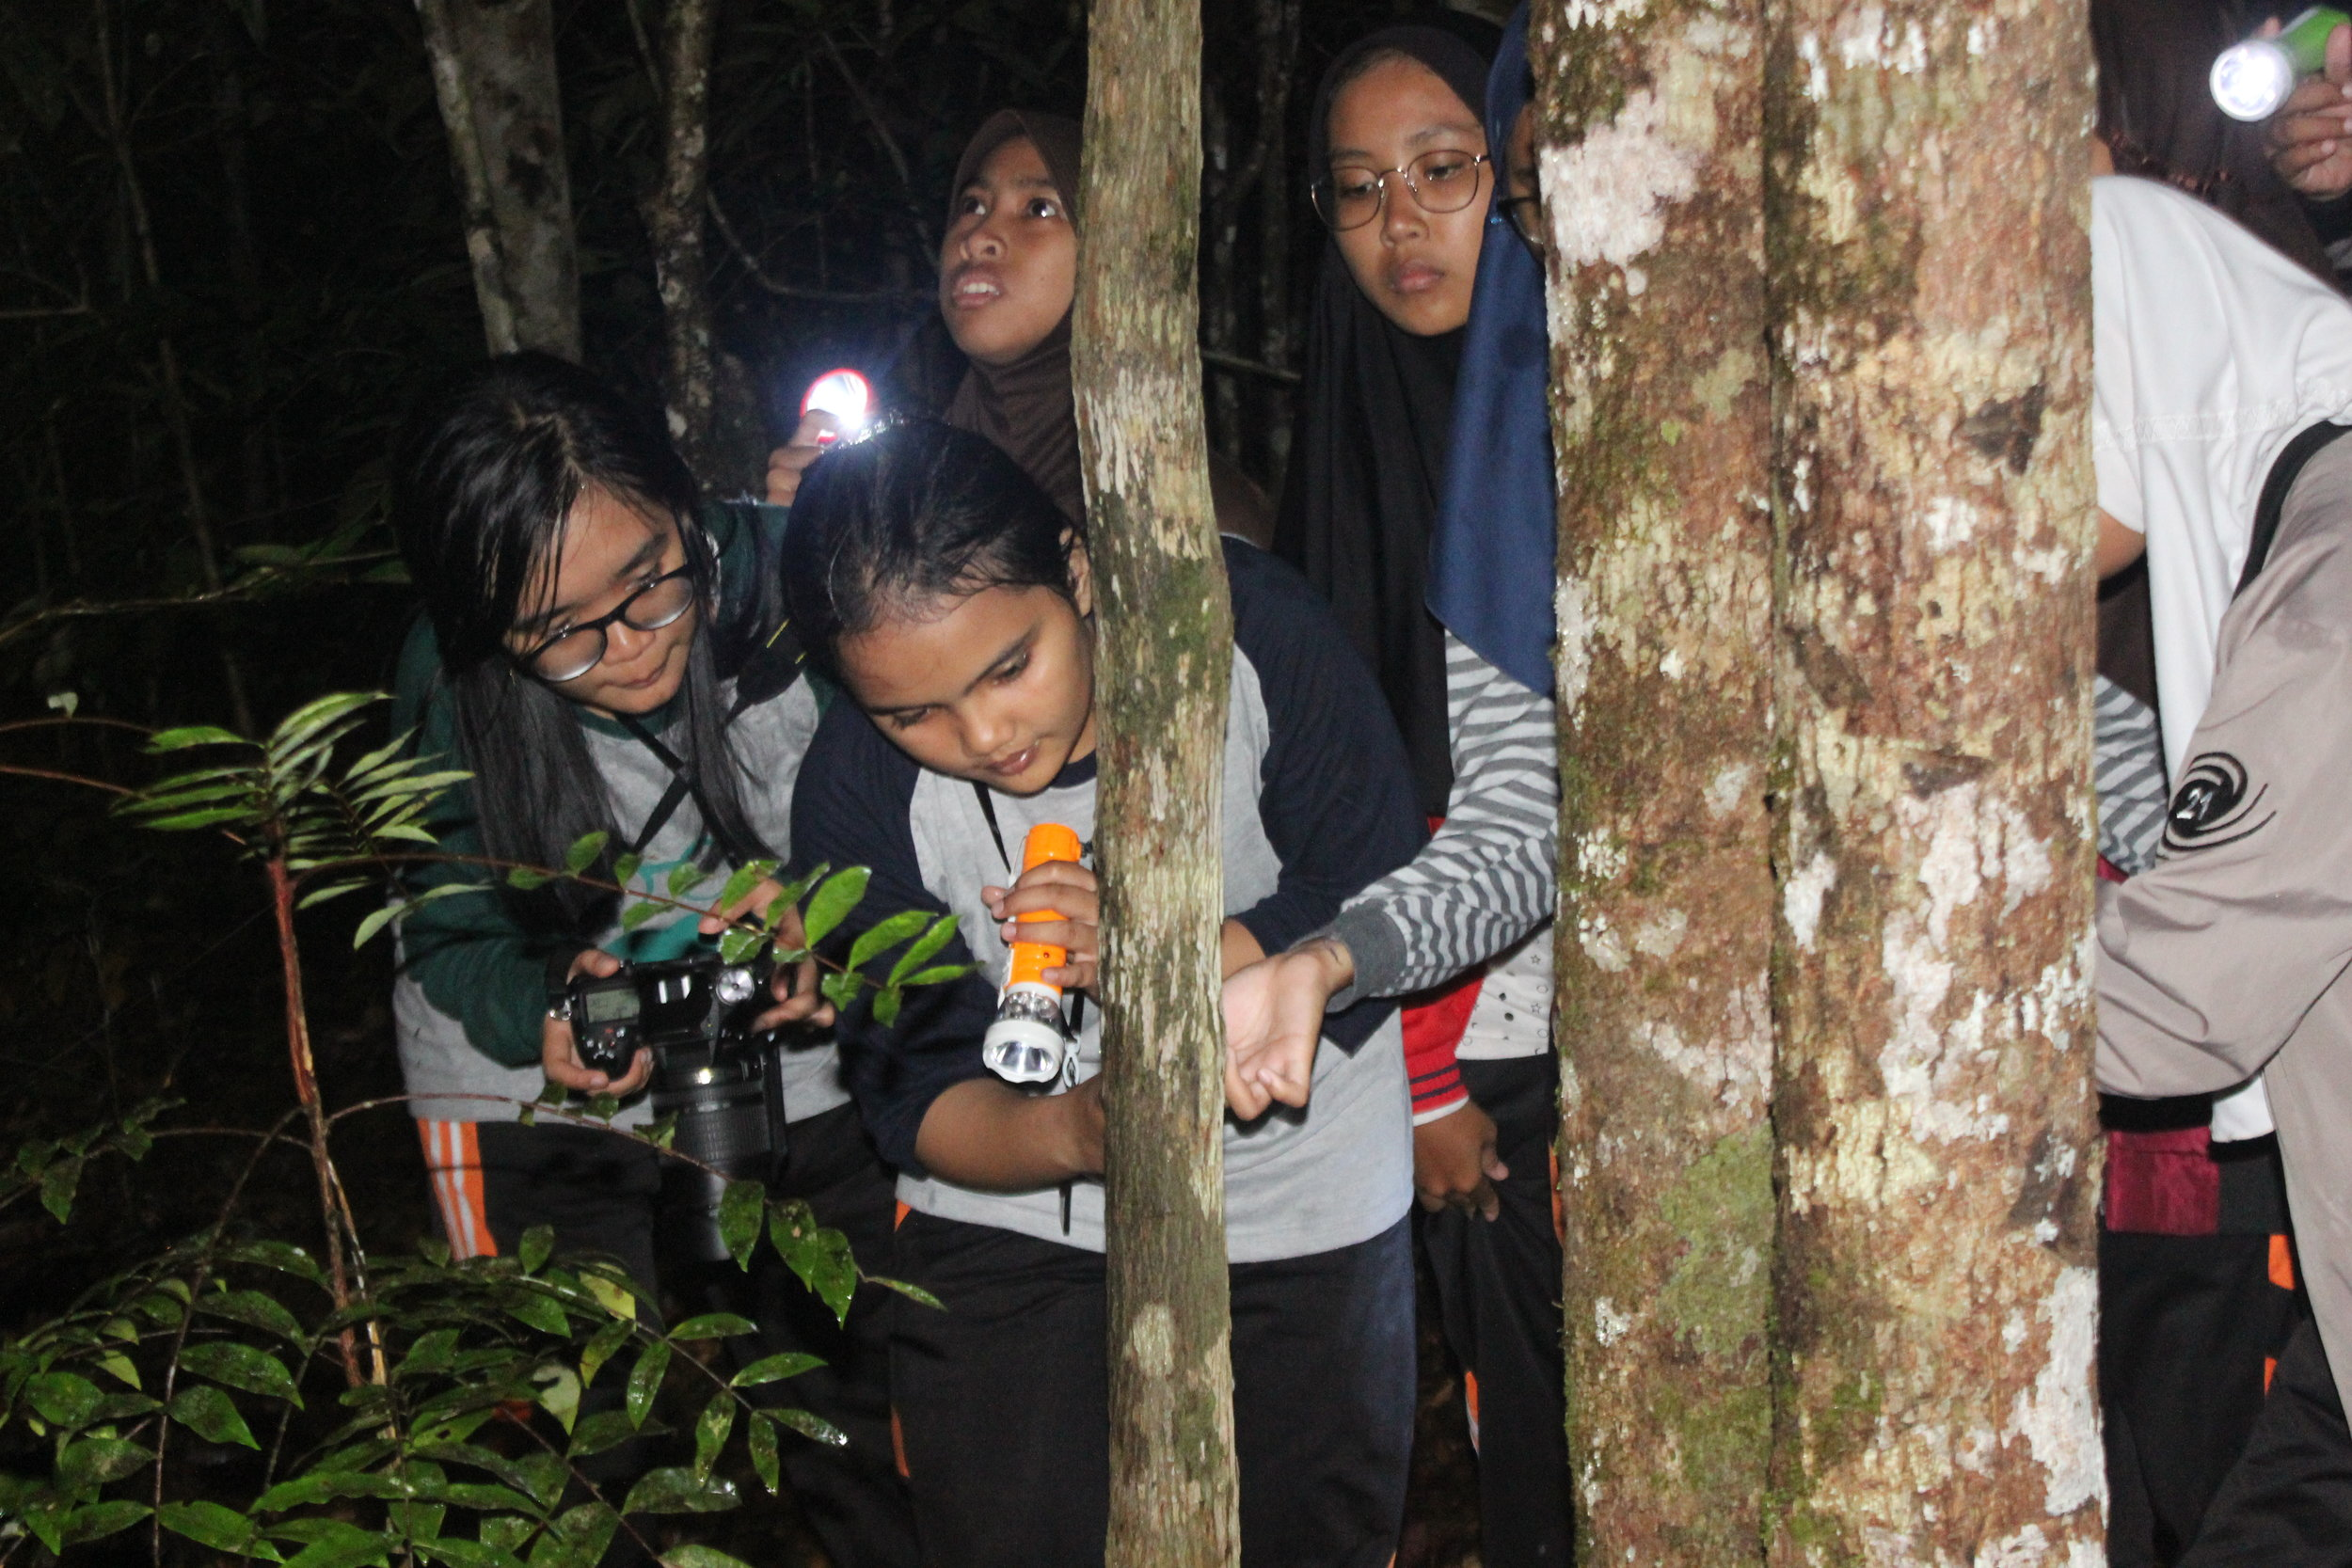 Students from school SMAN 1 Pangkalan Bun on a forest night walk looking for signs of wildlife.